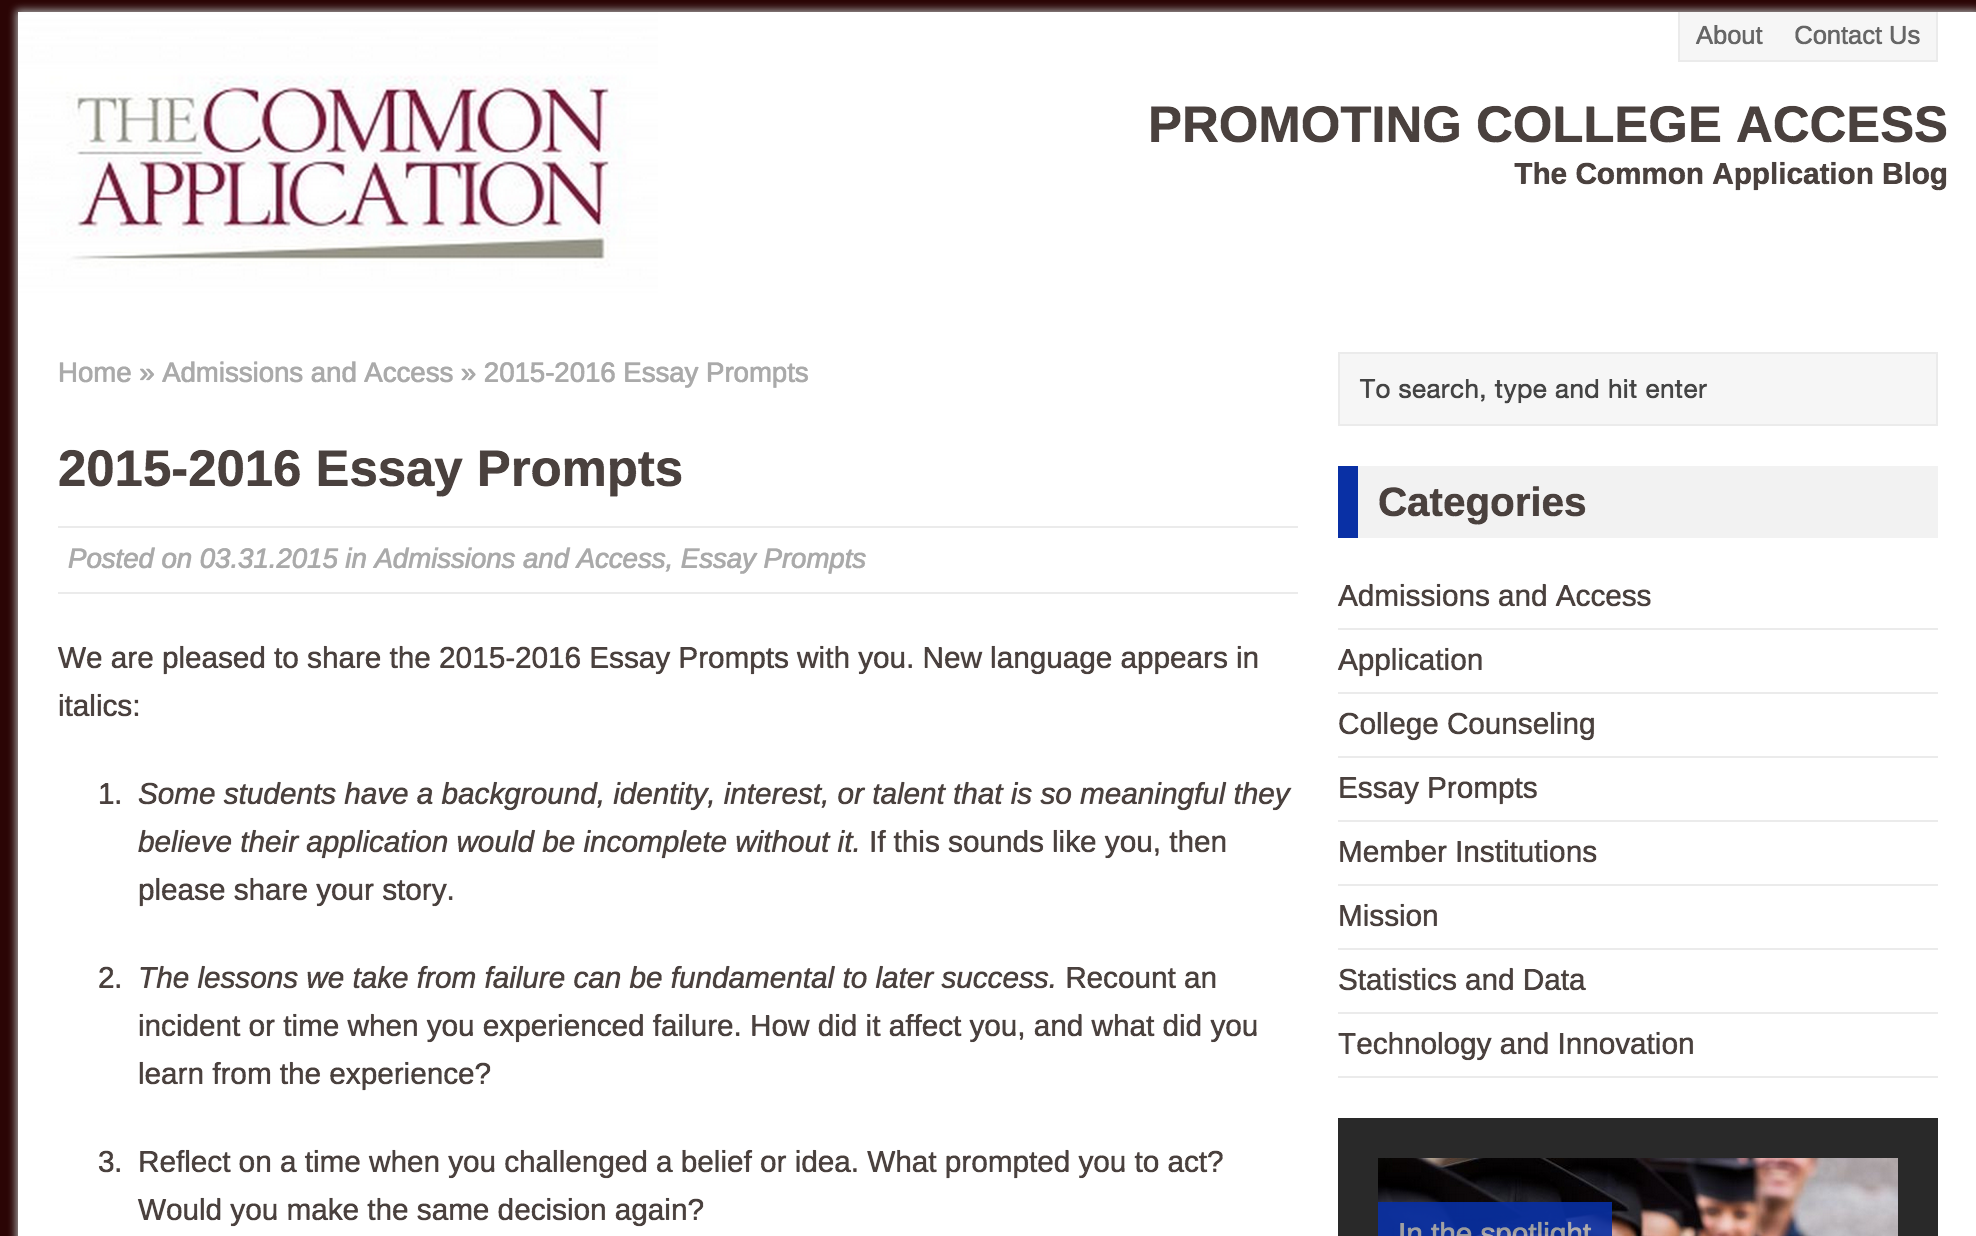 002 Essay Example Screen Shot At Pm Common App Unusual Prompt Examples 6 1 Sample Full